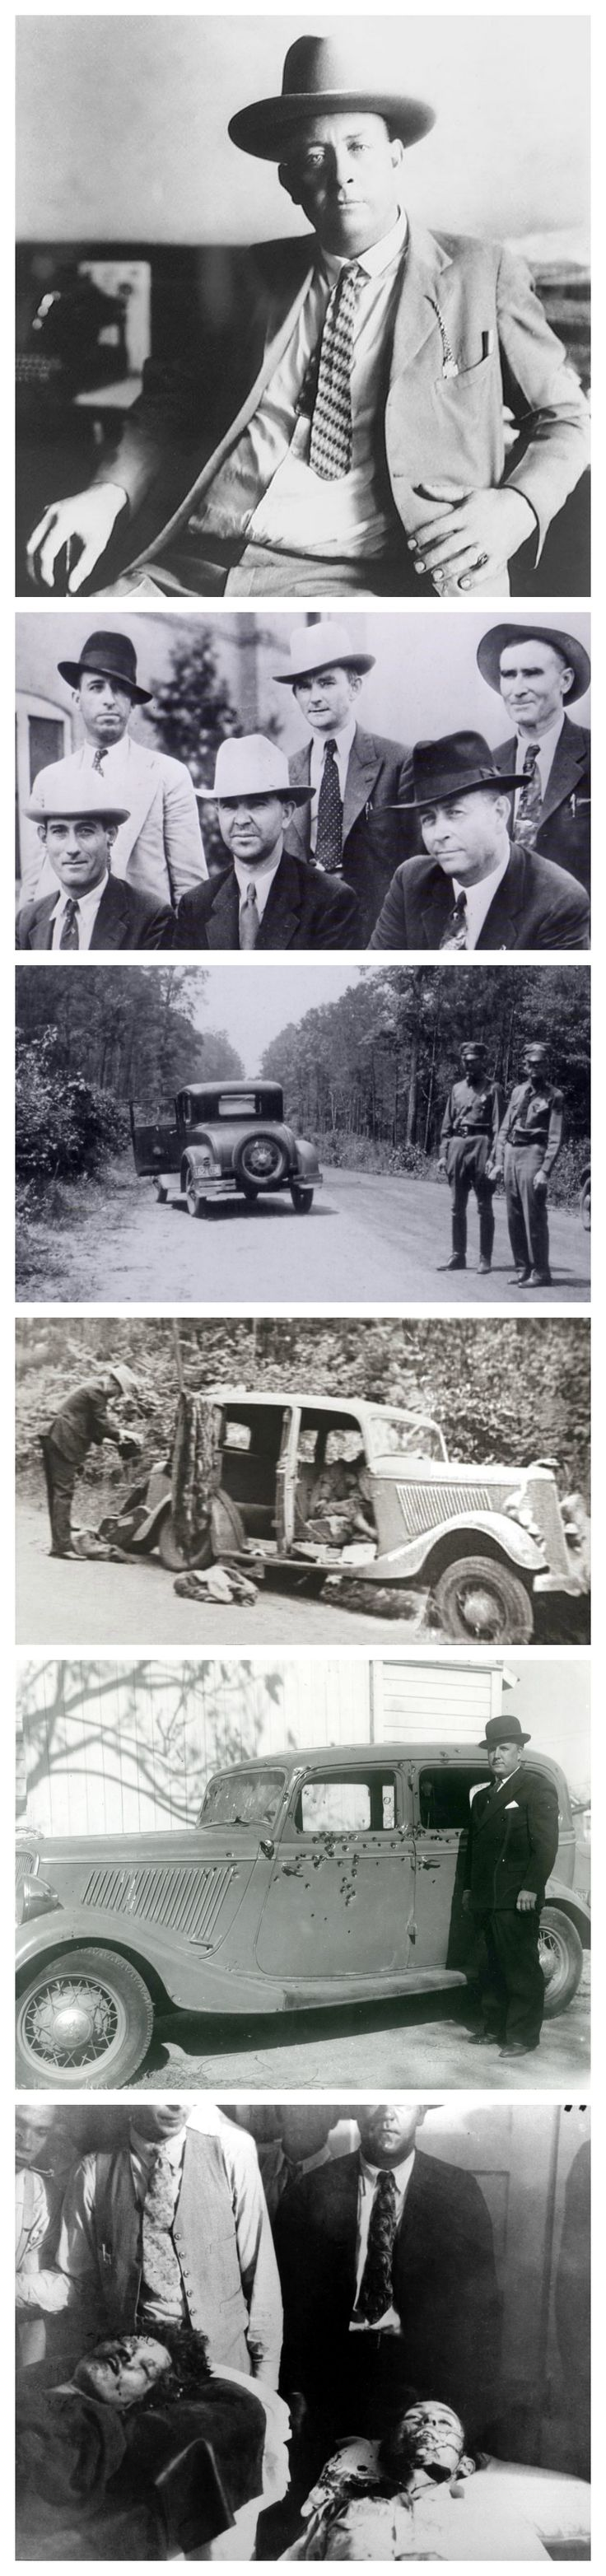 Bonnie & Clyde - The End:  In Feb 1934 former Texas Ranger Captain Frank A. Hamer was persuaded to hunt down the Barrow Gang.  He persued them for 3 months as they continued killing.  Barrow and Parker were ambushed and killed on May 23, 1934, on a rural road in Bienville Parish, Louisiana.